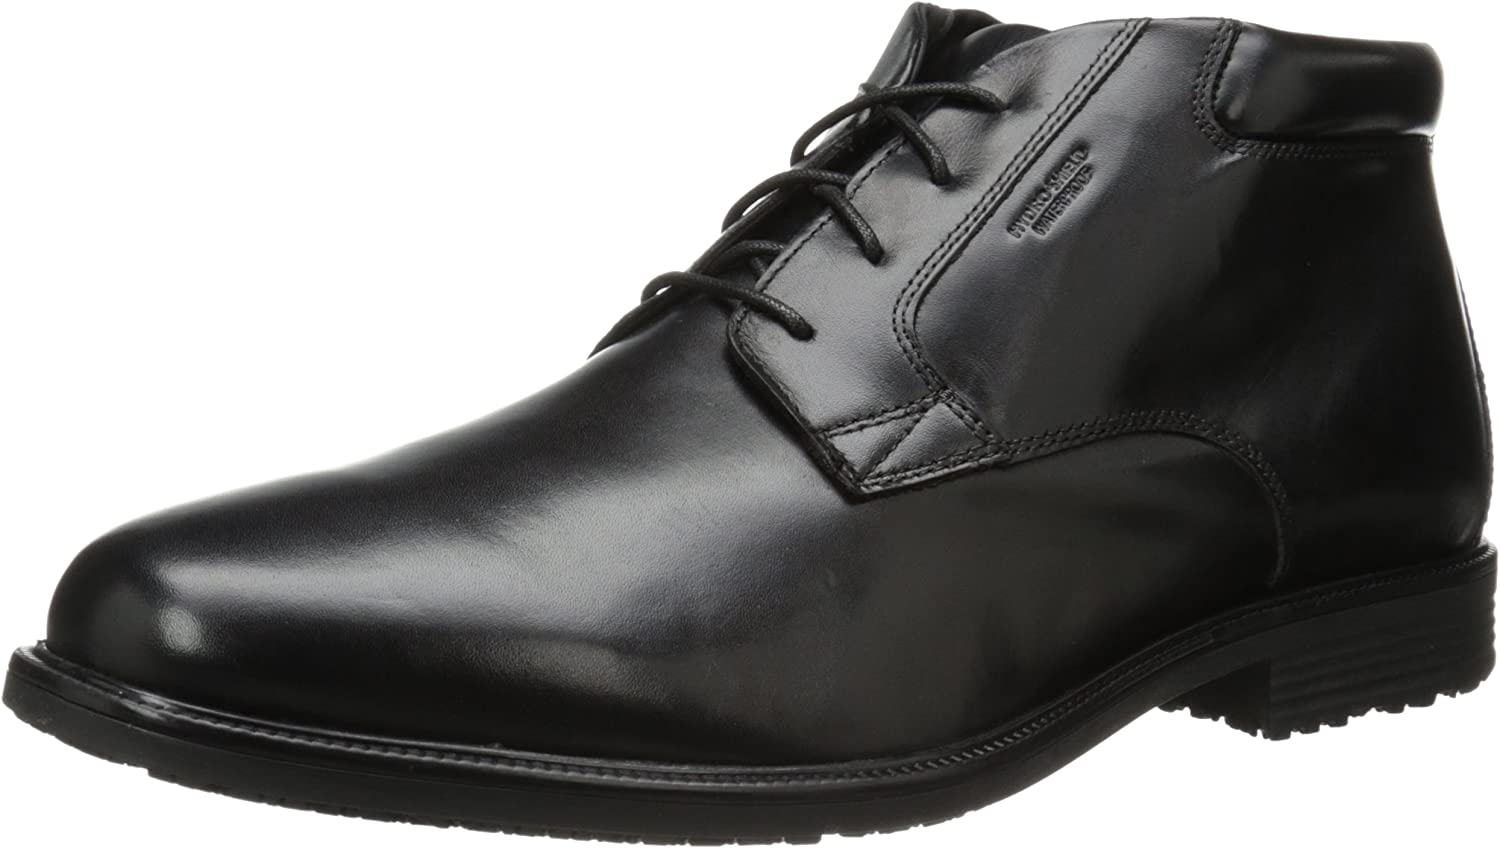 Cheap super special price Rockport Men's Very popular! Essential Details Water Proof Boot Chukka